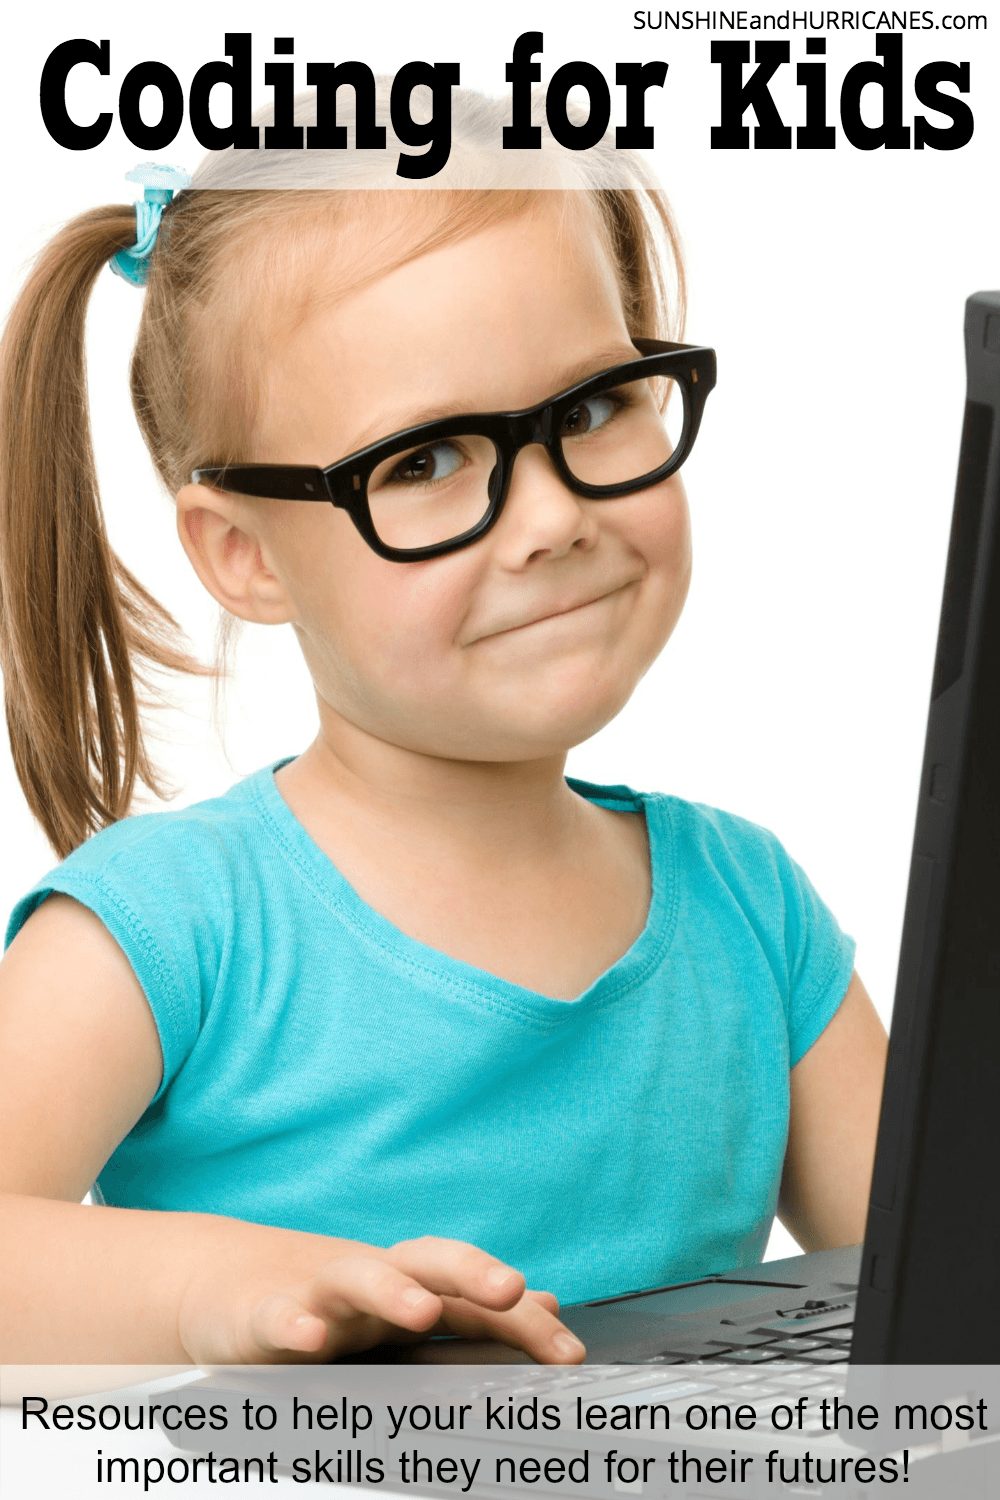 Did you know that a large percentage of jobs of the future will require some form of coding knowledge? It's a great skill for children to learn early and there are so many fun ways to encourage them to give coding a try! We've got all the resources you need to help your child learn this important skill. Coding for Kids. SunshineandHurricanes.com